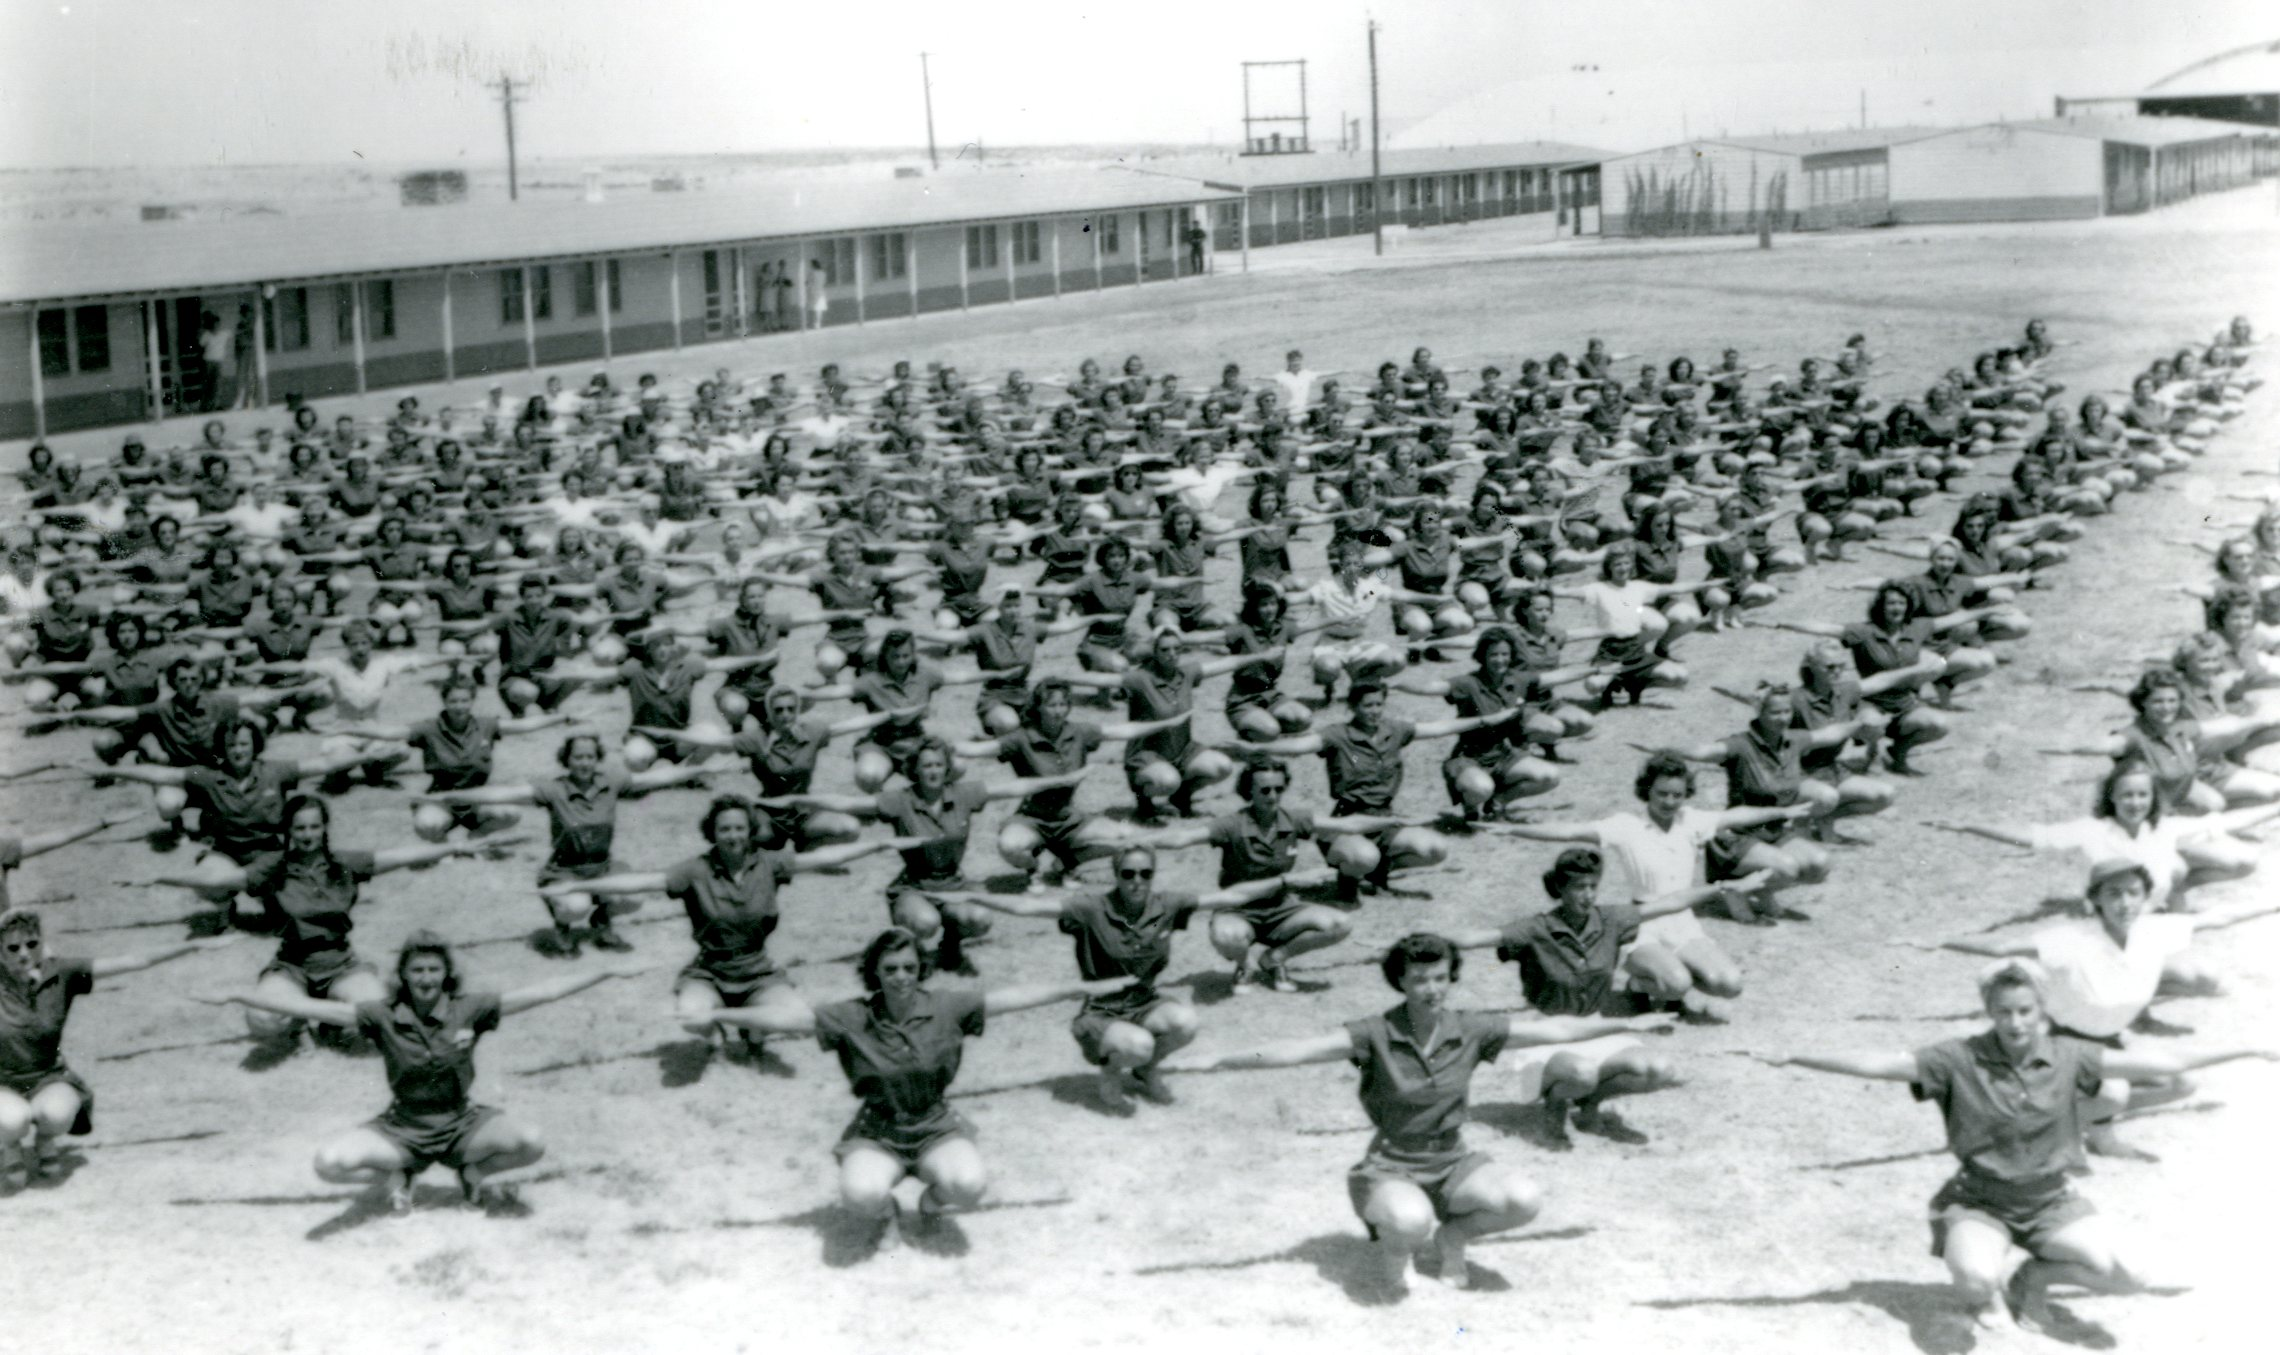 A large group of WASP doing calisthenics